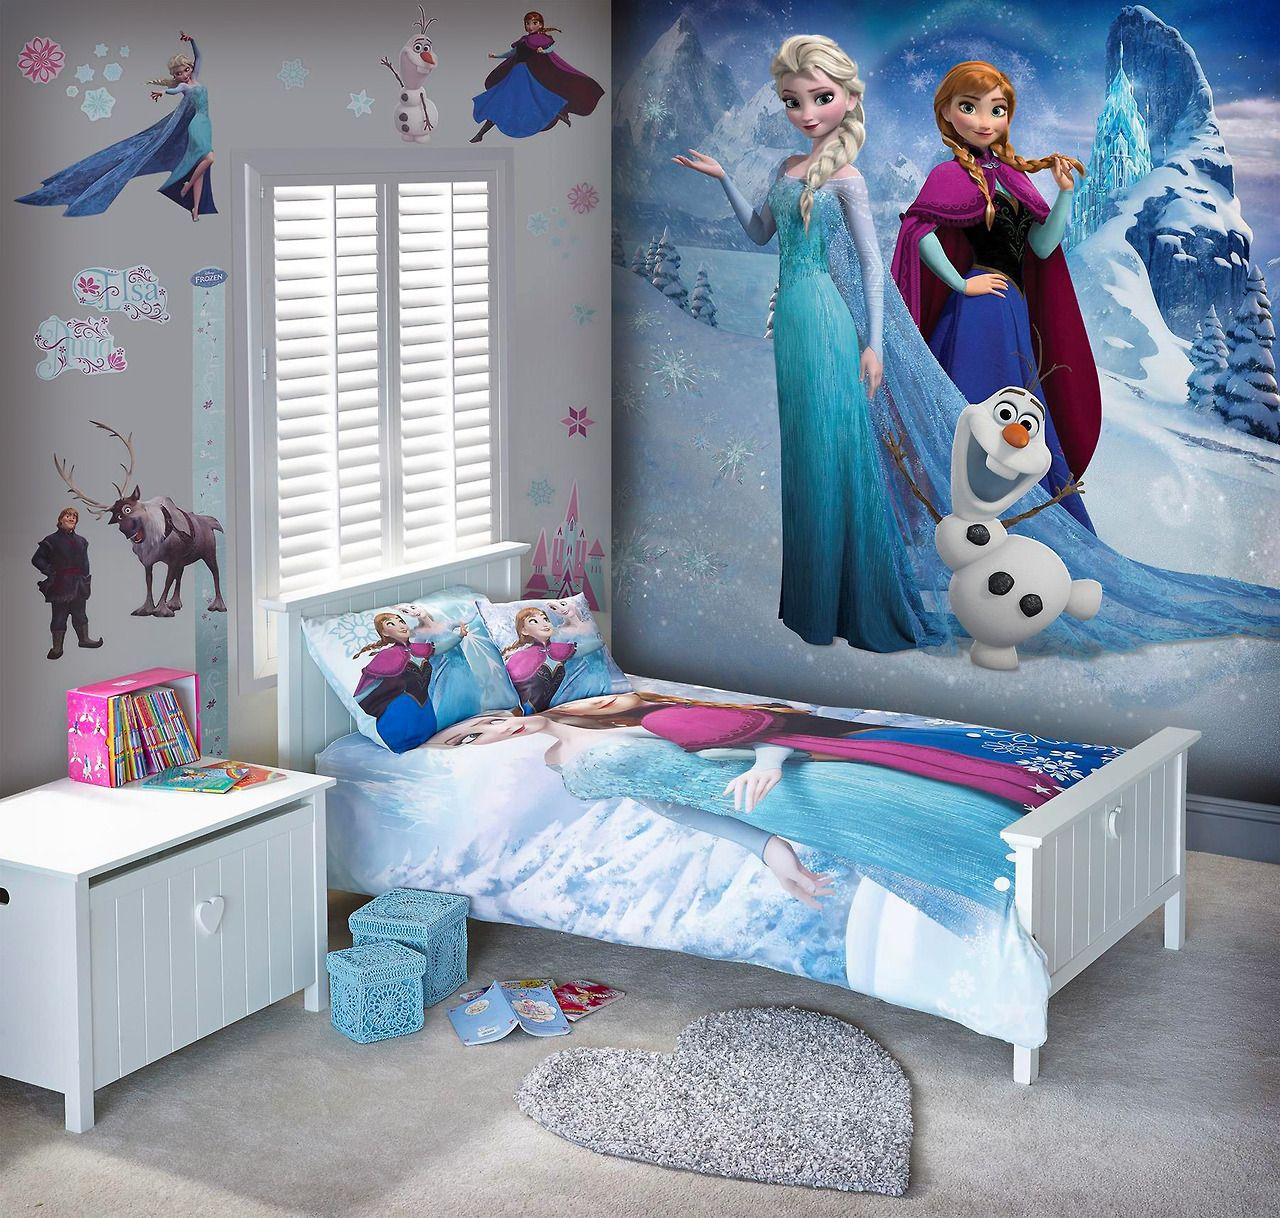 Disney Frozen Large Wall Mural From Next Kids Bedroom Idea - Disney bedroom furniture uk